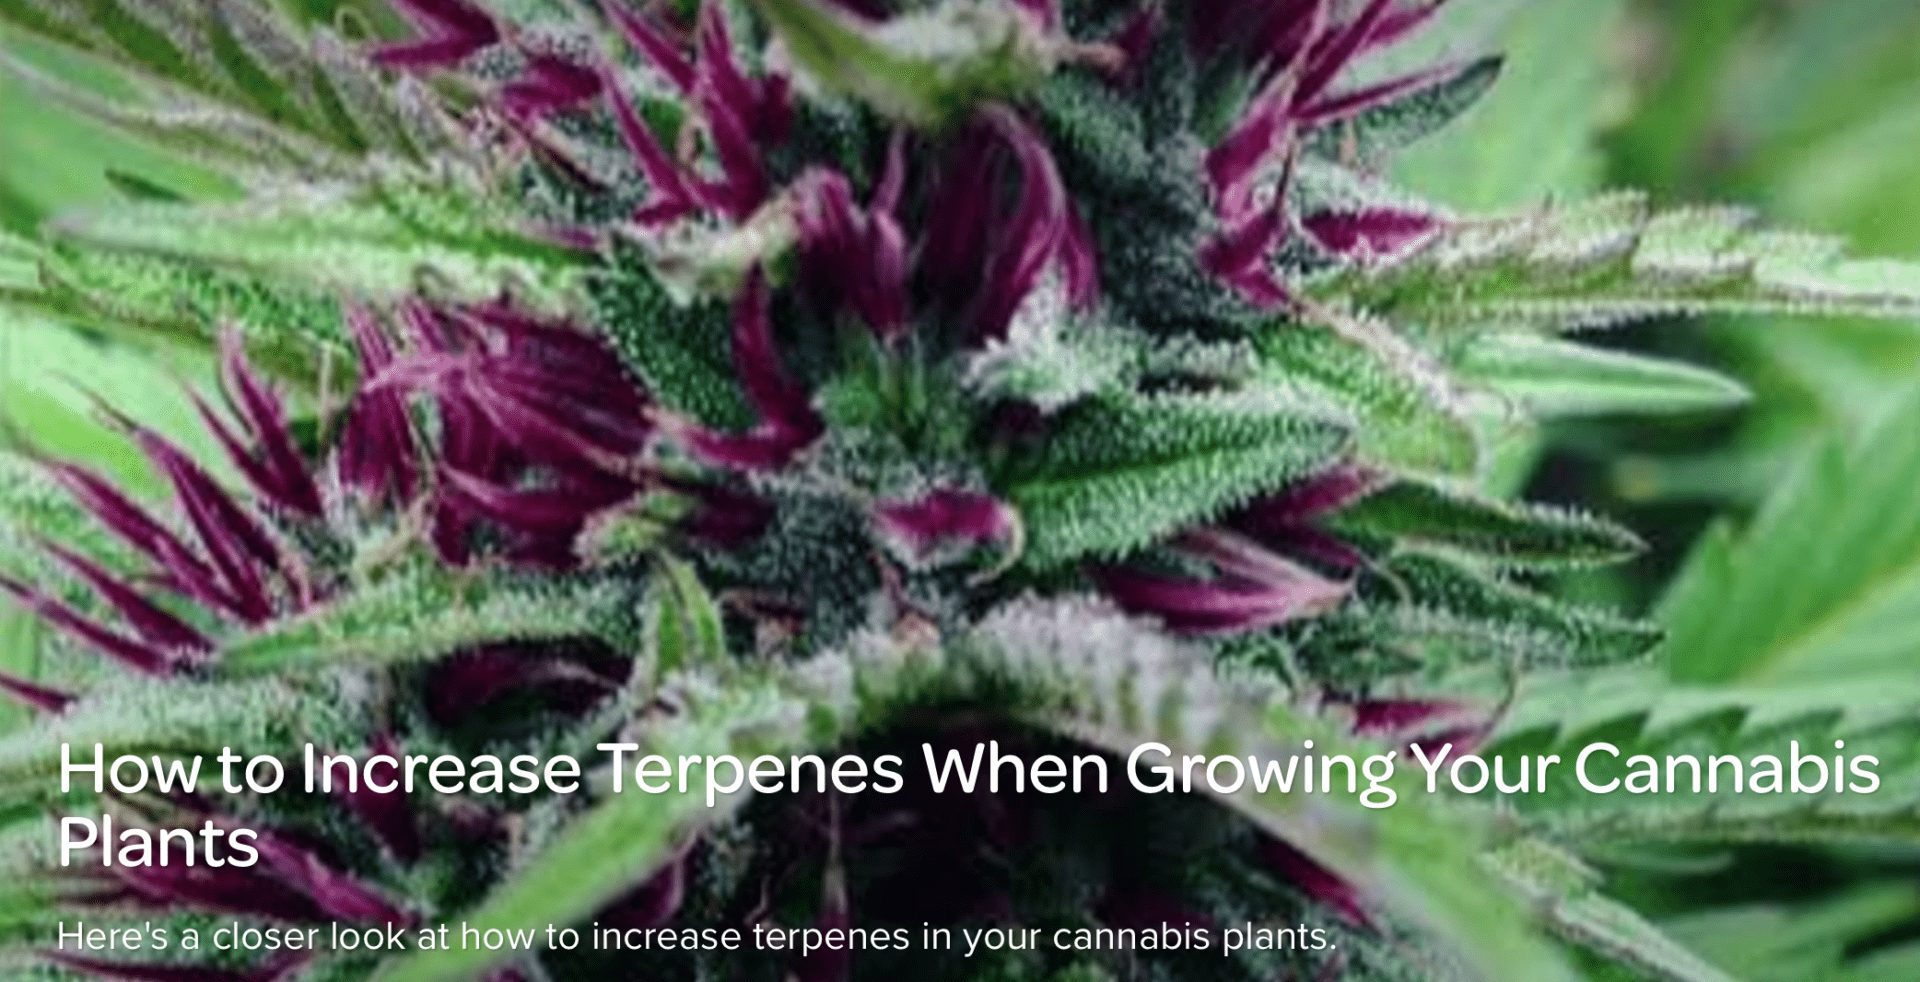 How to Increase Terpenes When Growing Your Cannabis Plants